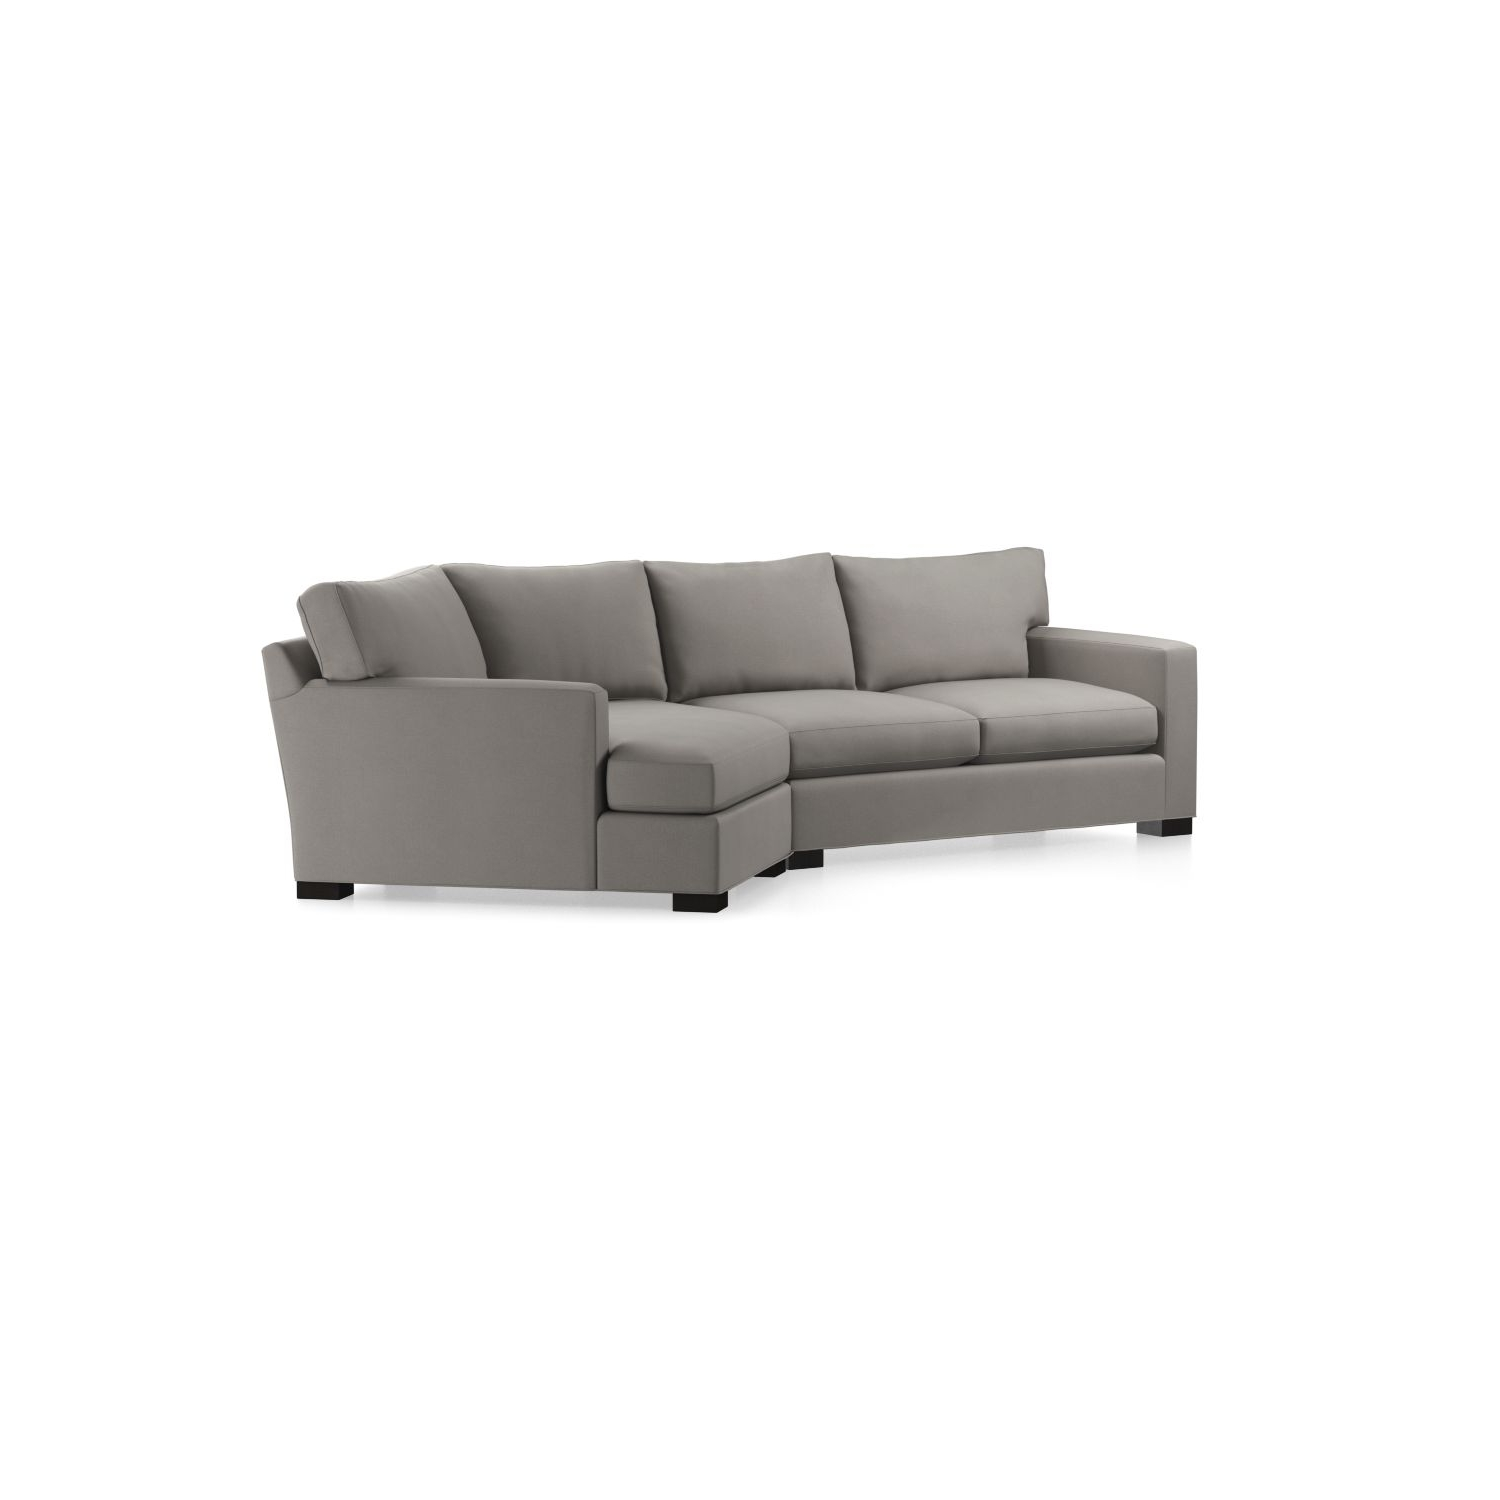 Angled Chaise Sofas For Most Current Axis Ii 2 Piece Right Arm Angled Chaise Sectional Sofa In Axis (View 4 of 20)